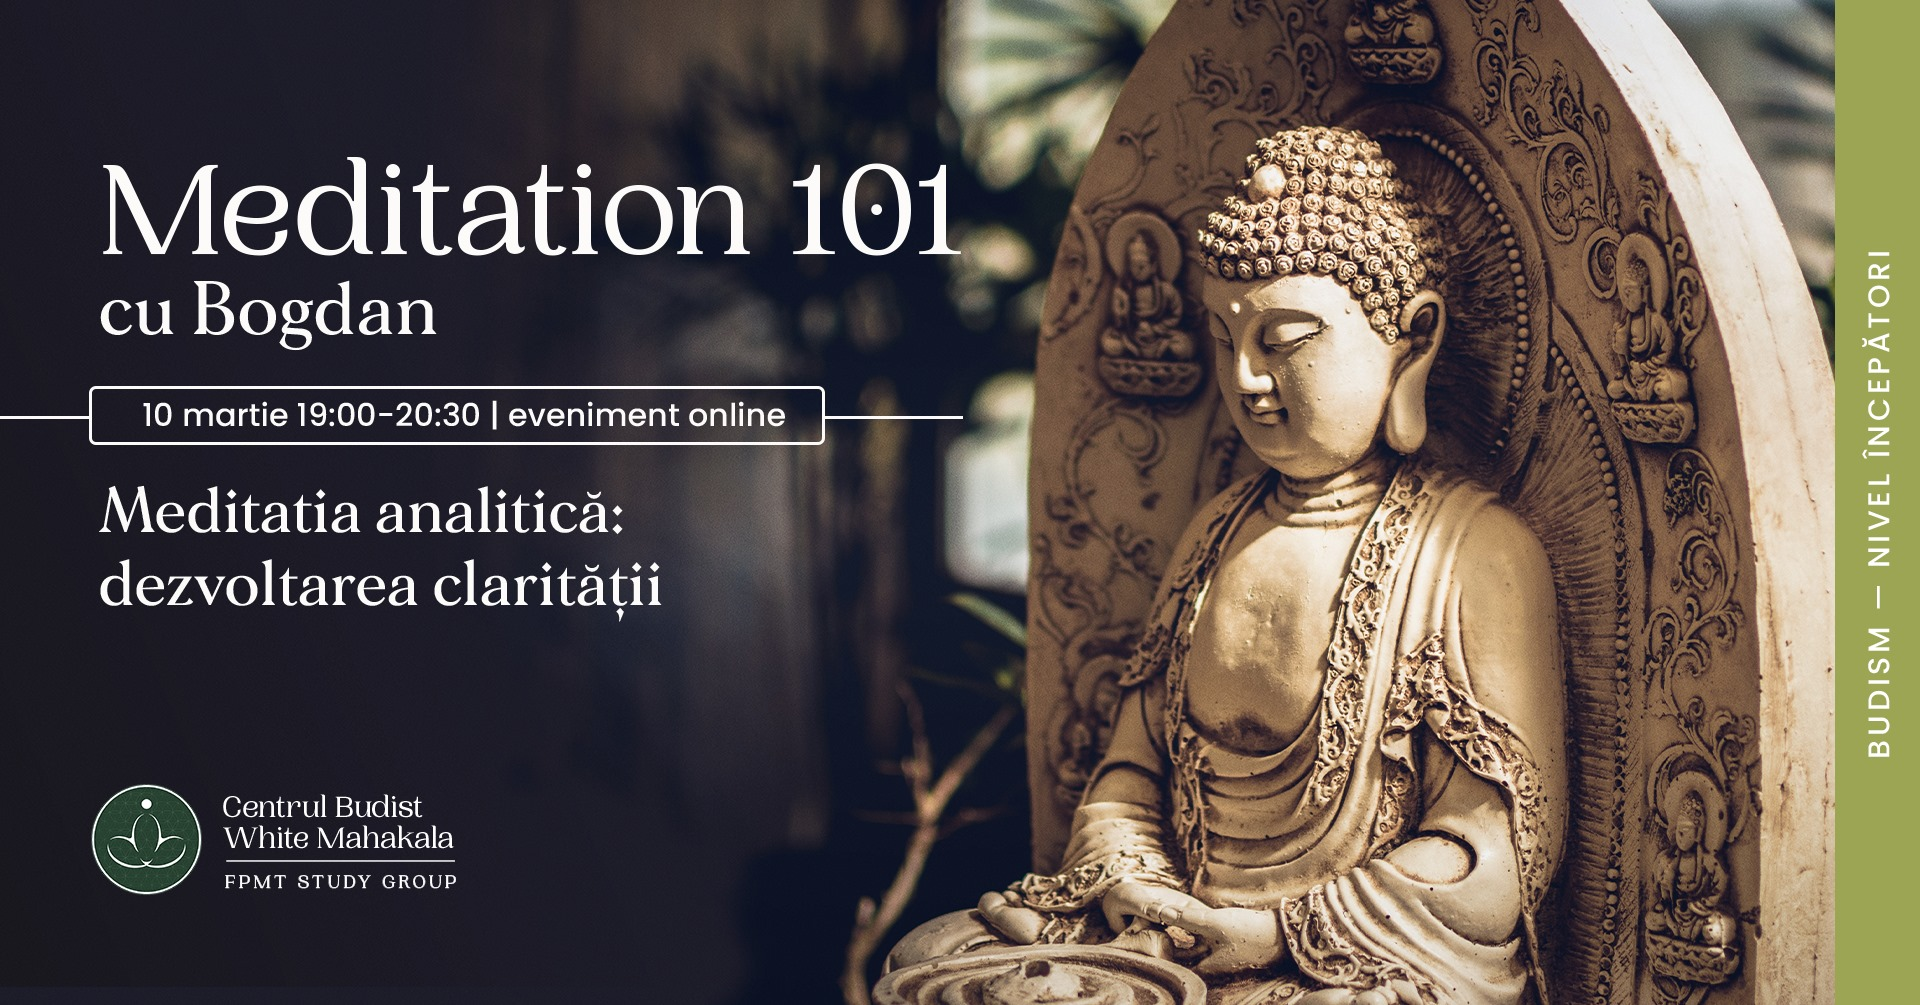 MEDITATION 101- Meditatia analitica